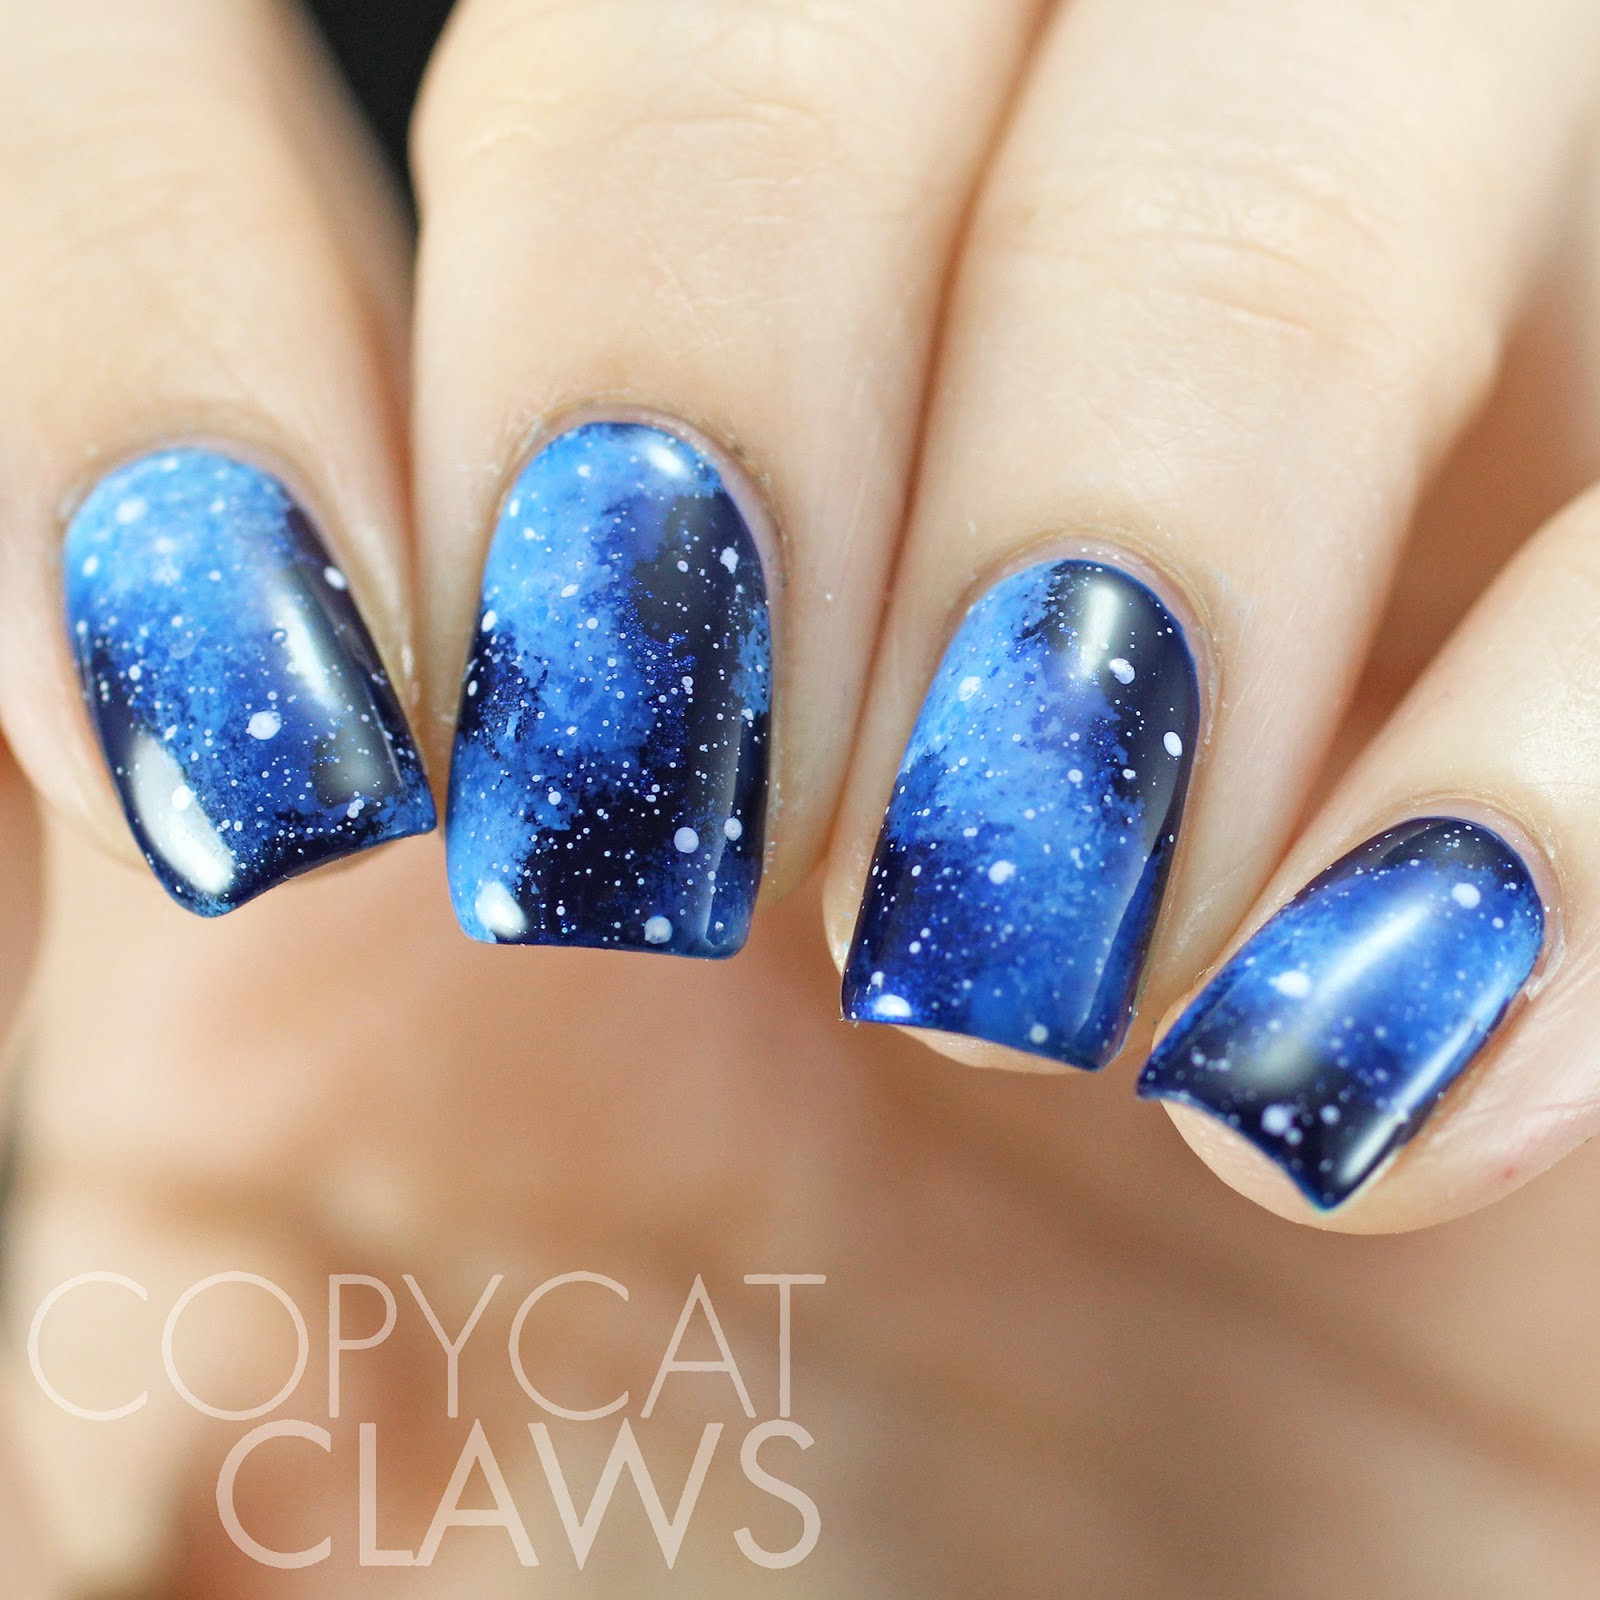 Copycat claws the hitchhikers guide to the galaxy nail art then so i didnt just do galaxy nails i used my favourite part of the book about the whale and the bowl of petunias if you havent read it or dont prinsesfo Choice Image